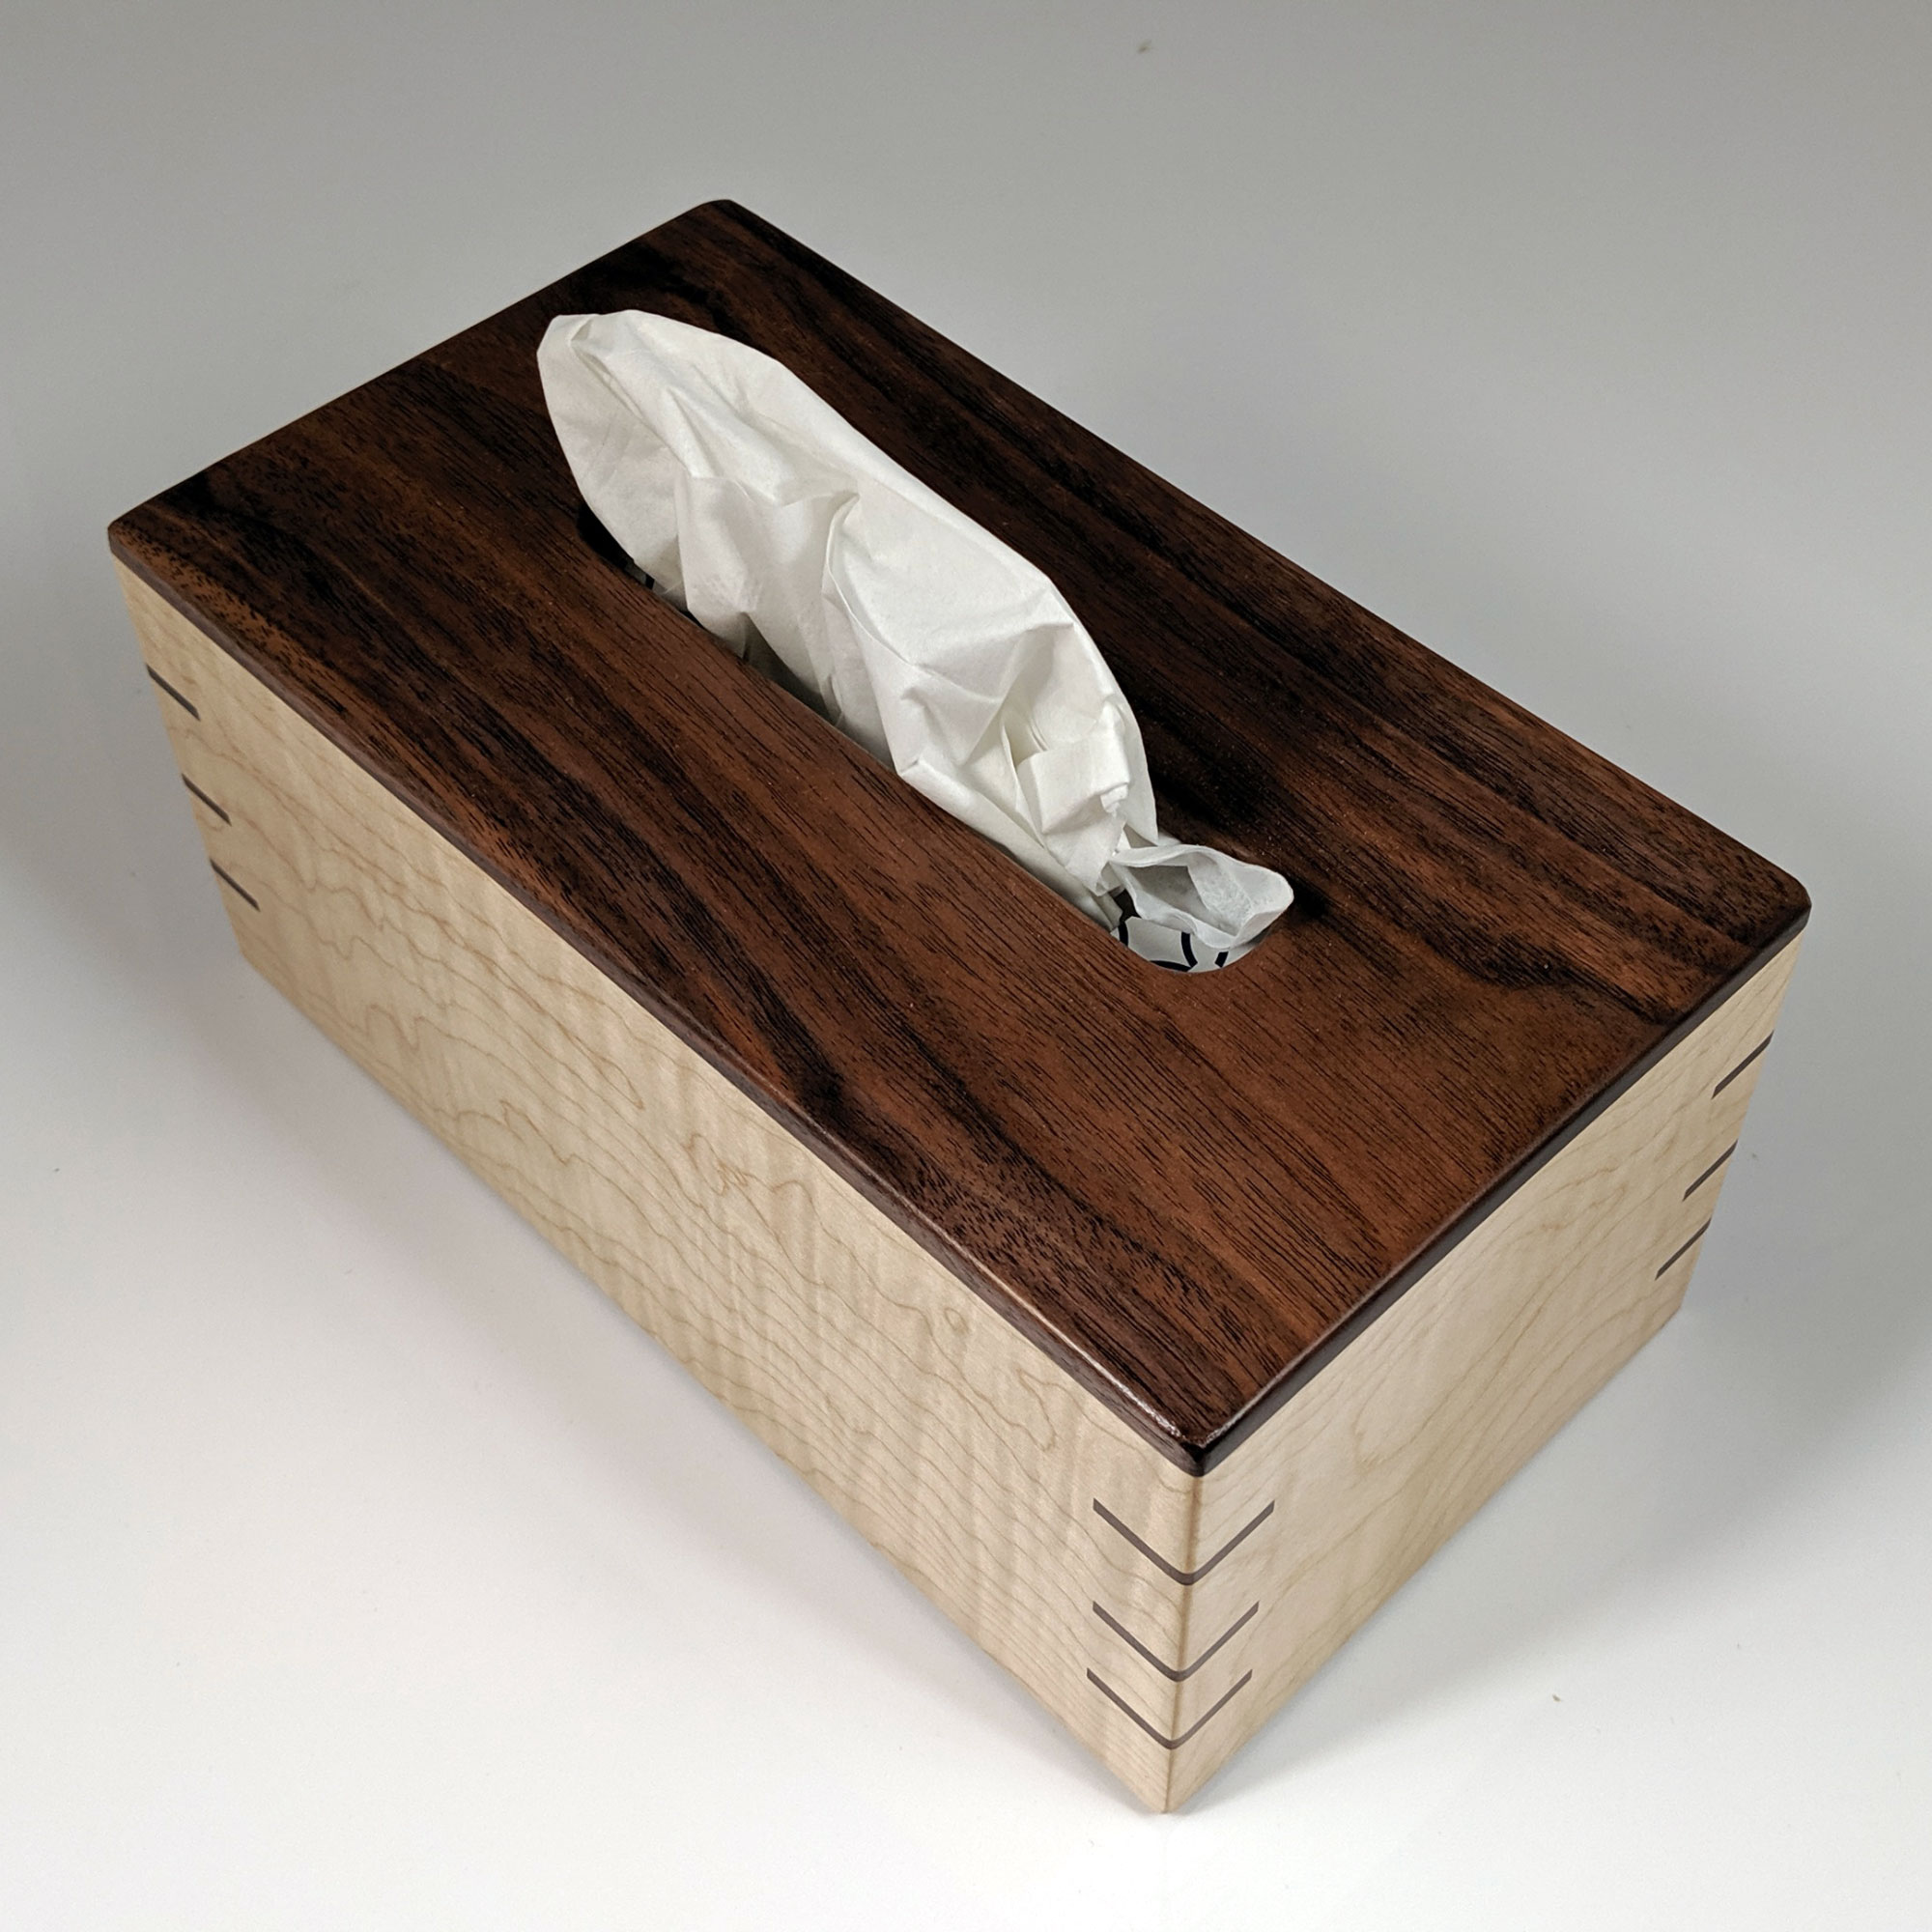 Walnut Natural finish NEW Wooden tissue box cover